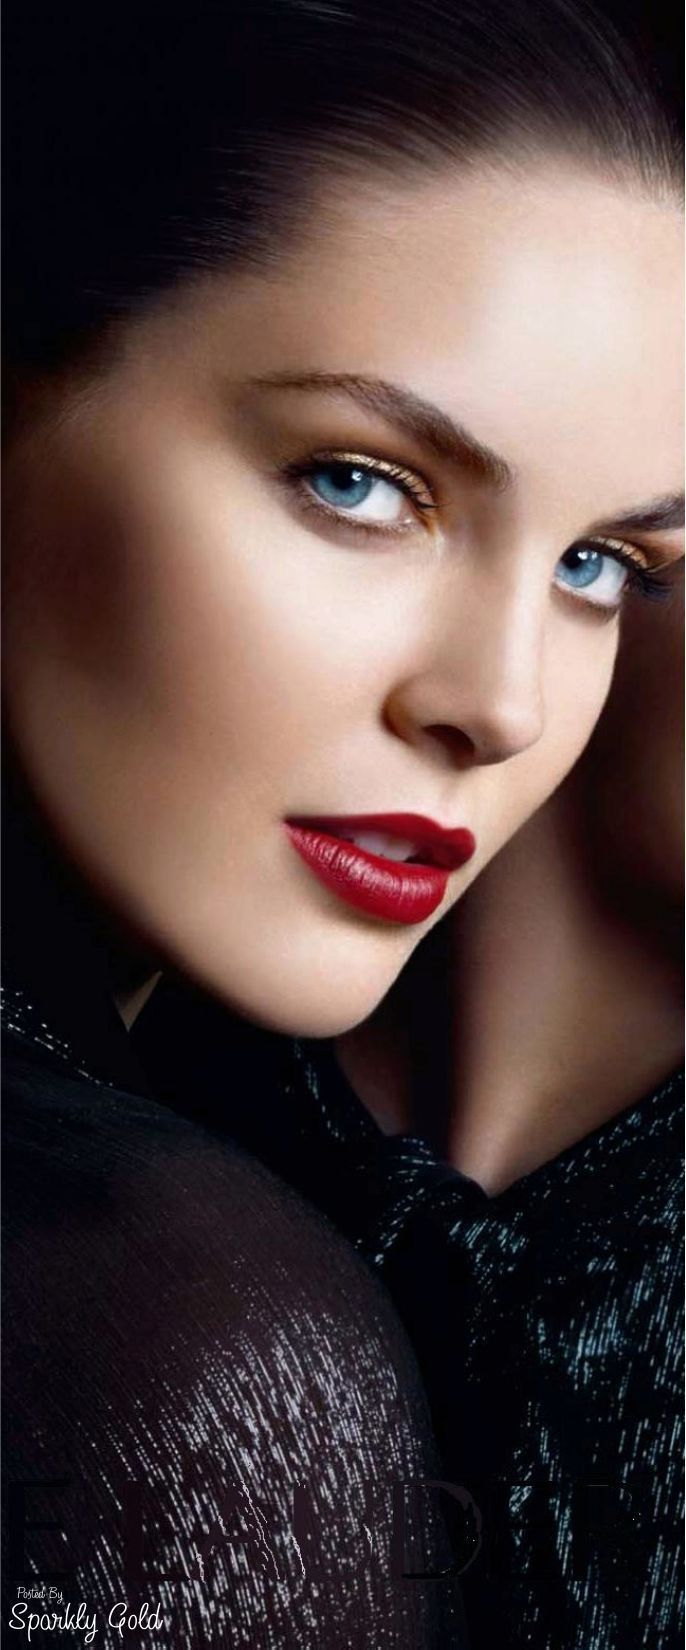 The beauty of Hilary Rhoda's scintillating red kissable pout